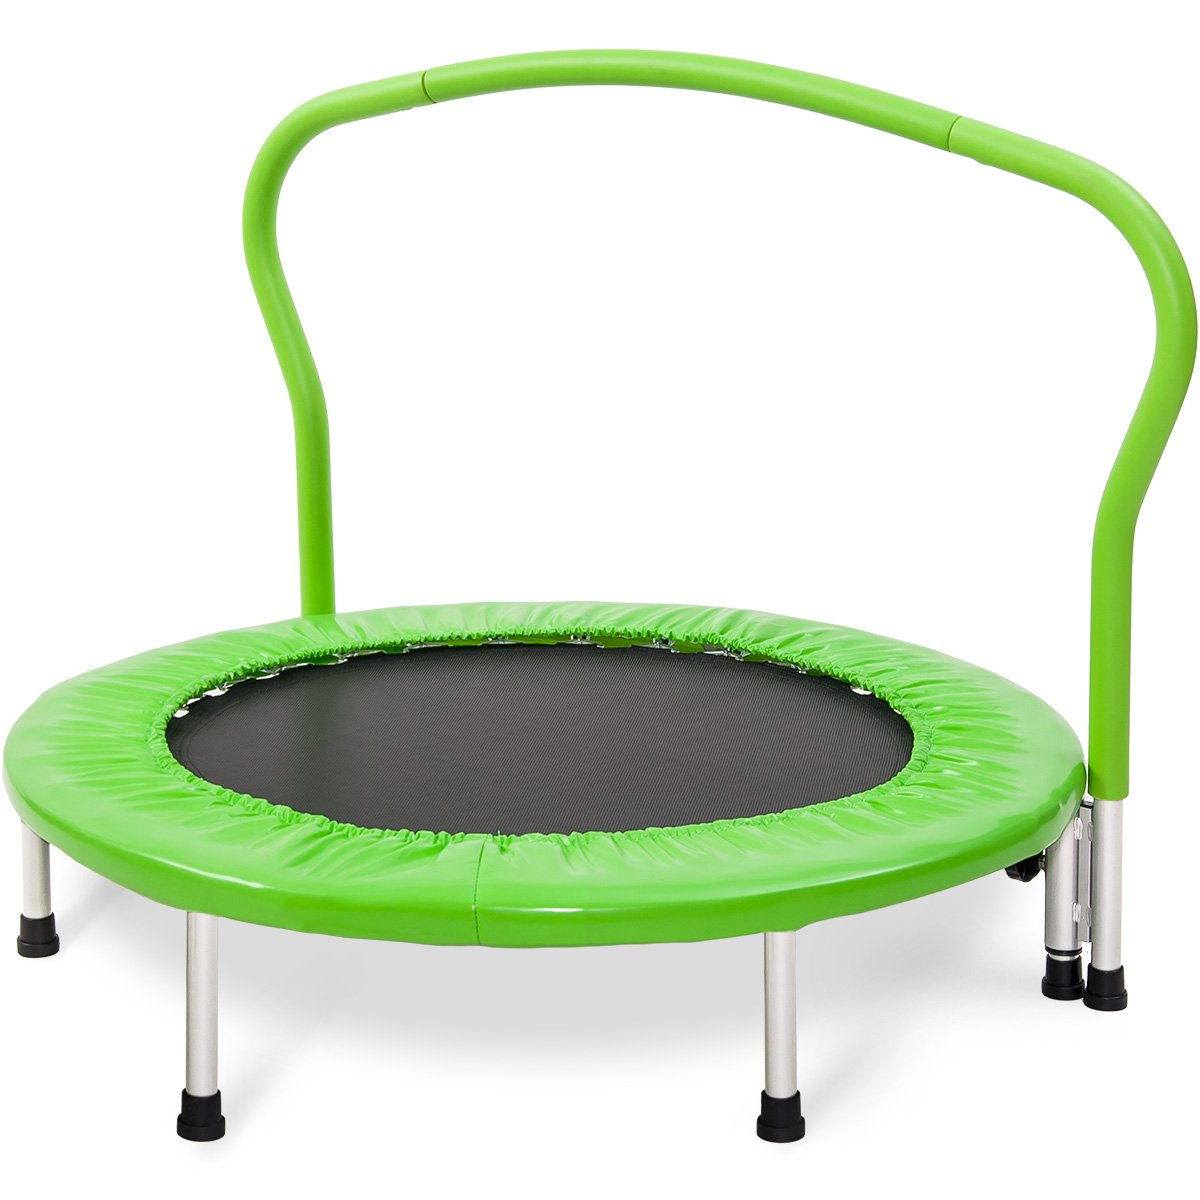 Merax 36'' Mini Trampoline for Kids Exercise Rebounder Portable Trampoline with Handrail and Padded Cover (Neon Green) by Merax